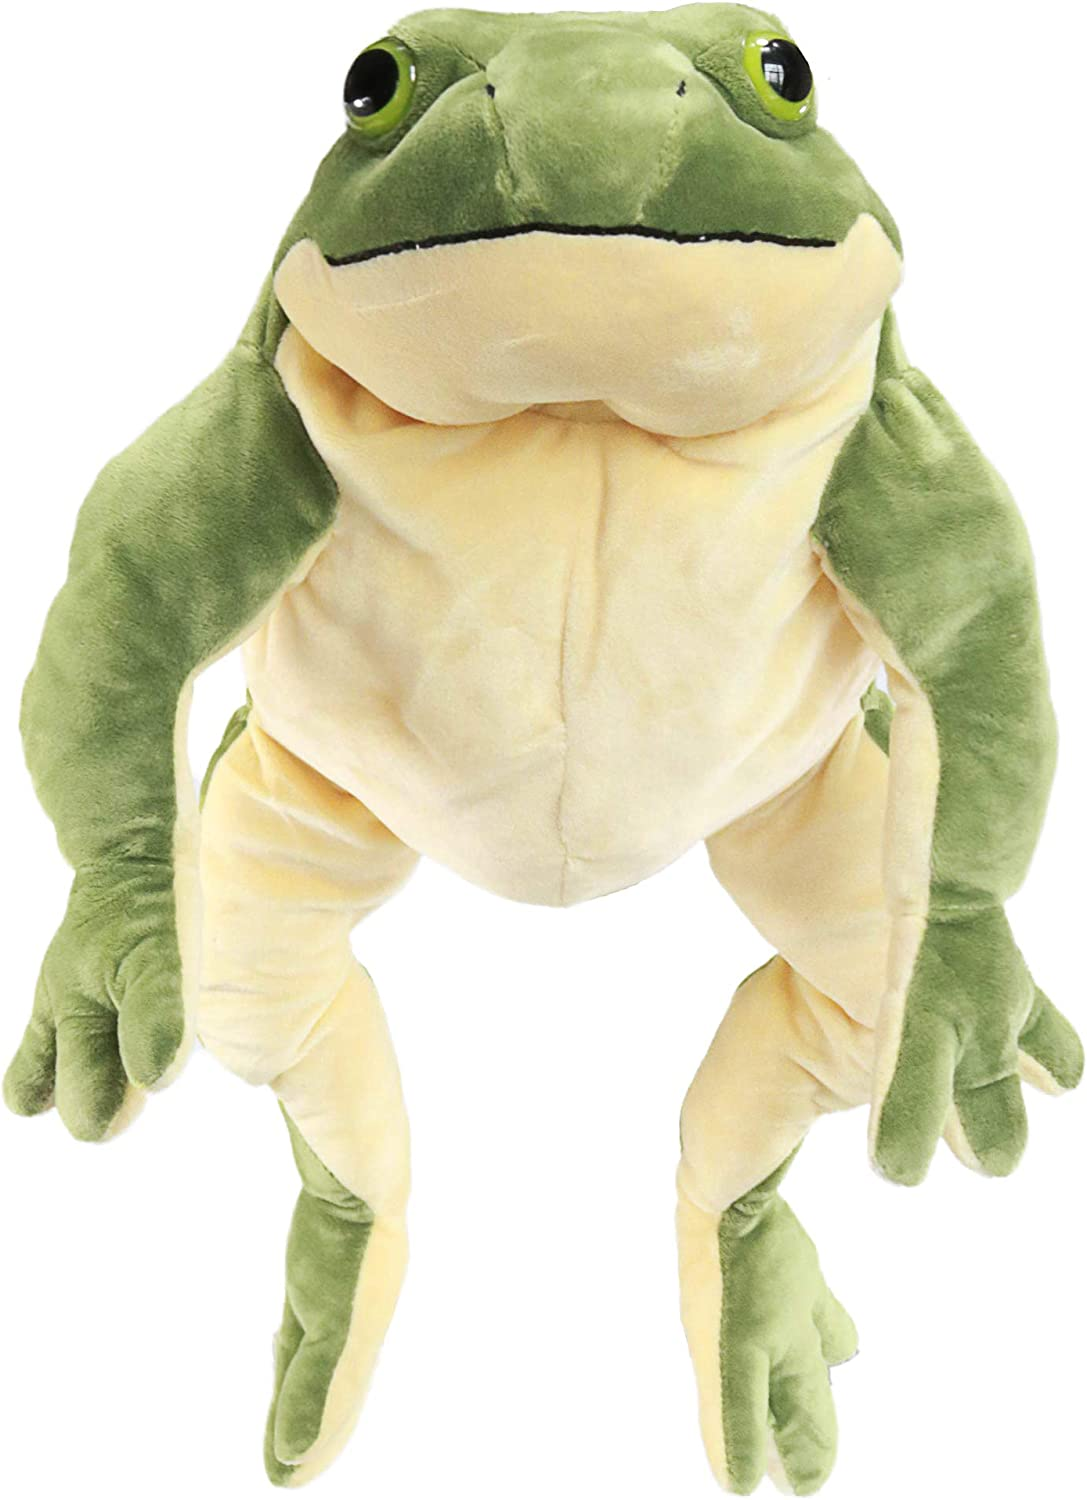 Plush Giant Frog Stuffed Animal Soft Toy, 22 Inches Large, Green